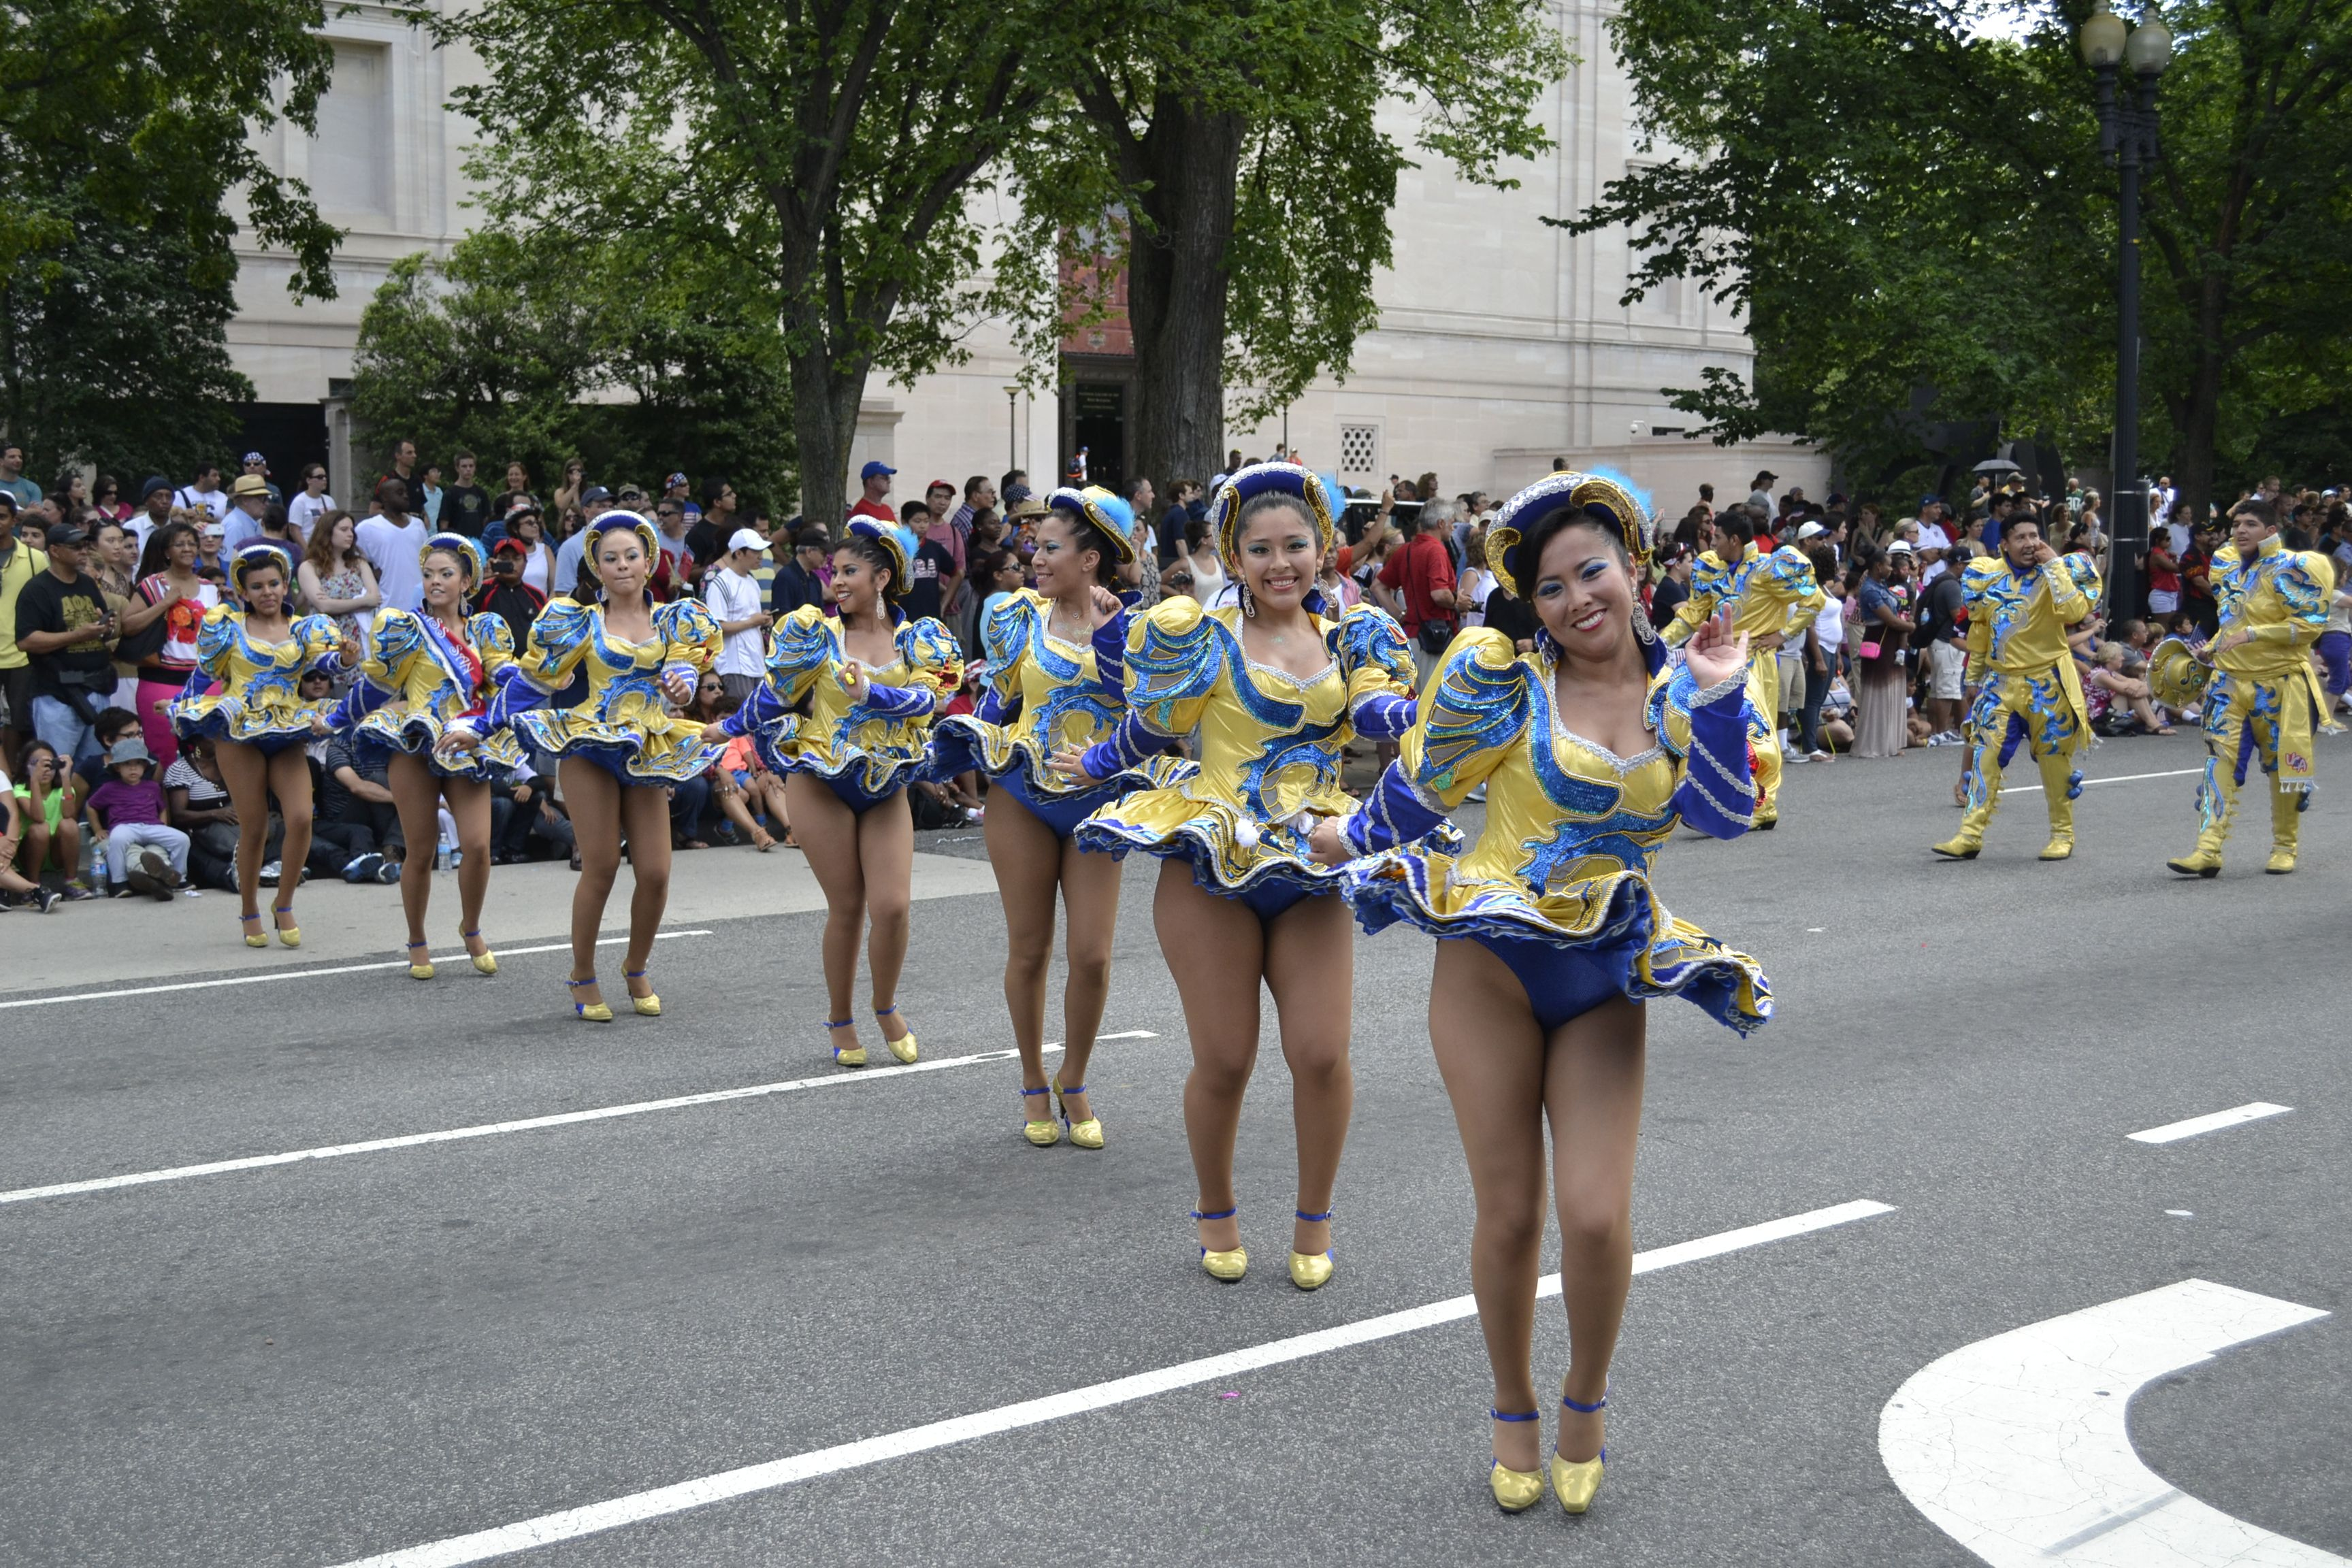 OH YES! A lovely row of leggy Caporales dancers!!